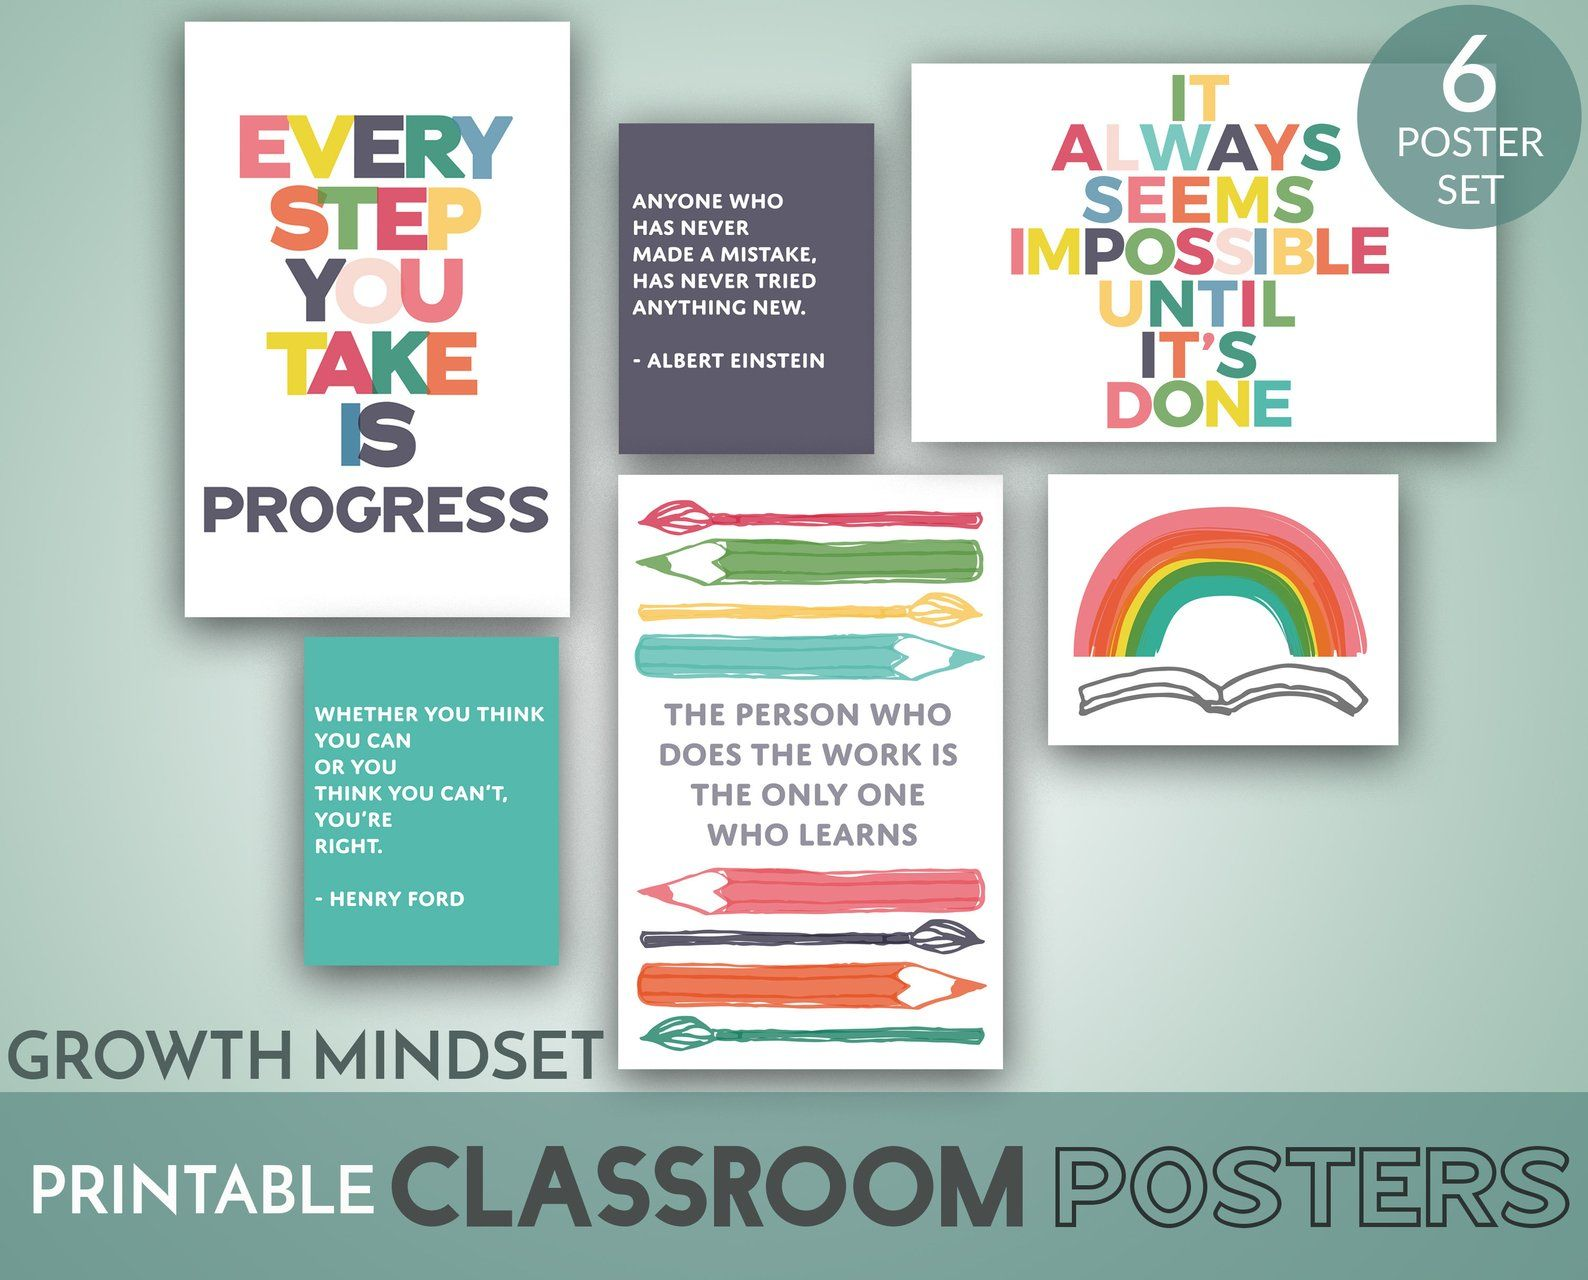 Classroom Posters Printable Set Of 6 Growth Mindset Digital Art Prints In 8 5x11 And 11x17 Size Classroom Decor Instant Download Classroom Posters Digital Art Prints Posters Printable